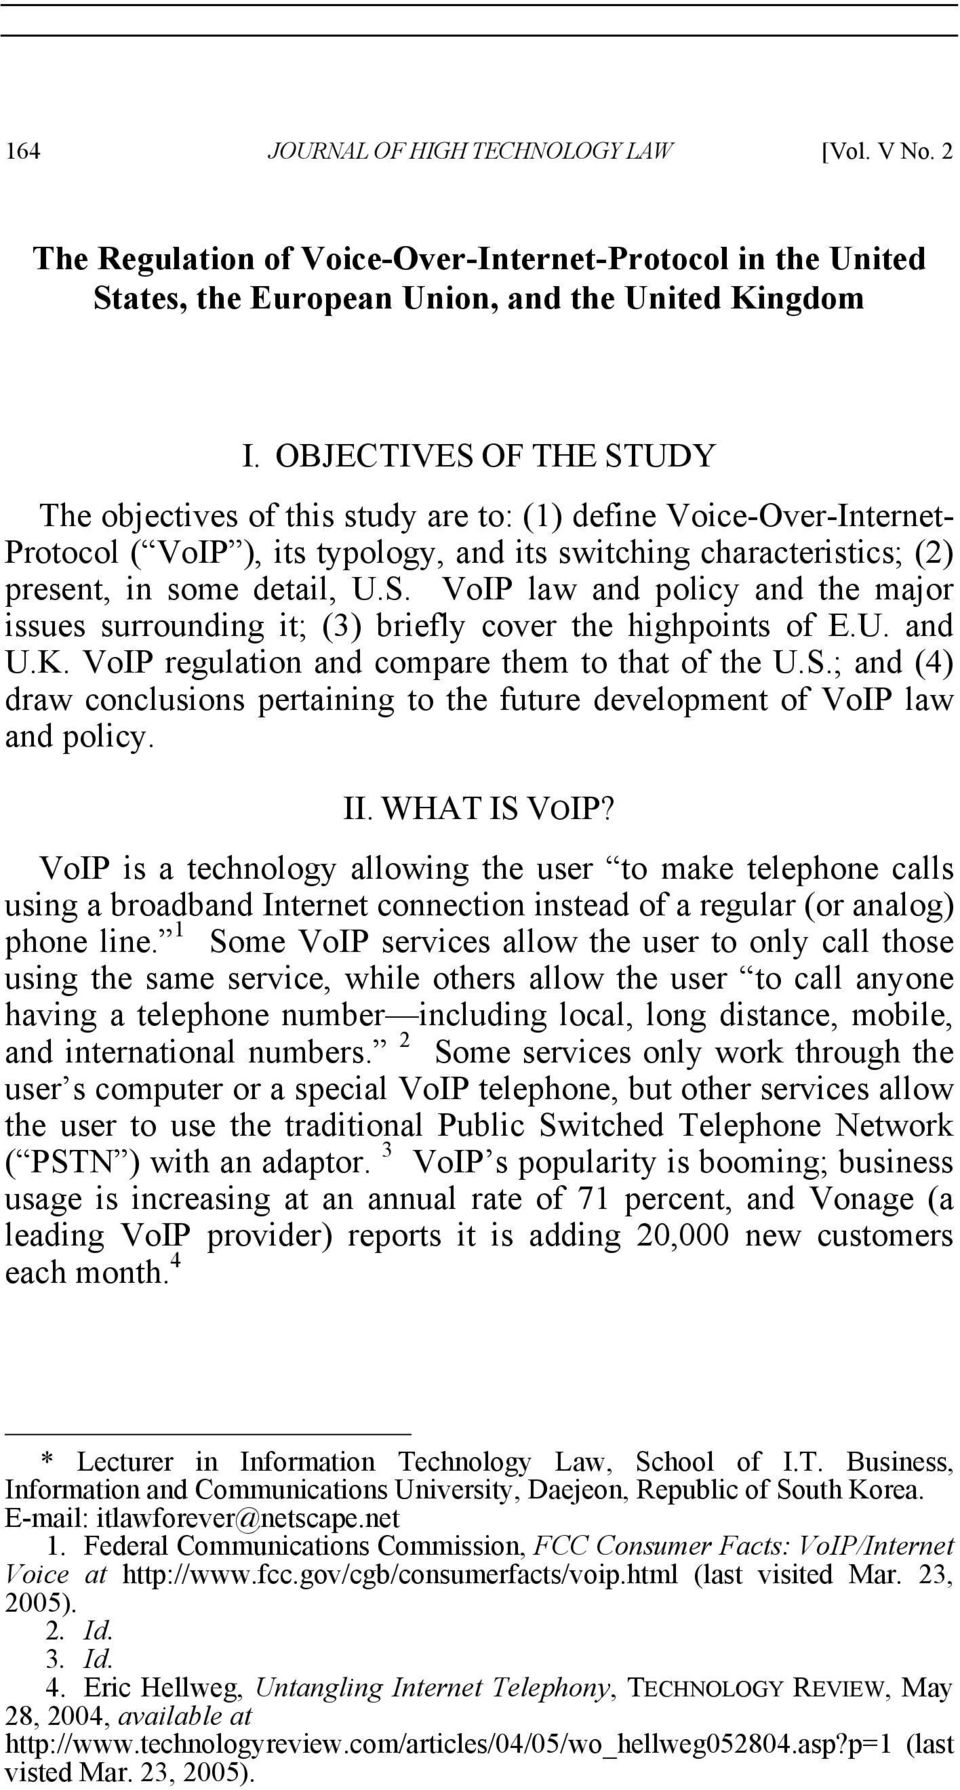 U. and U.K. VoIP regulation and compare them to that of the U.S.; and (4) draw conclusions pertaining to the future development of VoIP law and policy. II. WHAT IS VOIP?